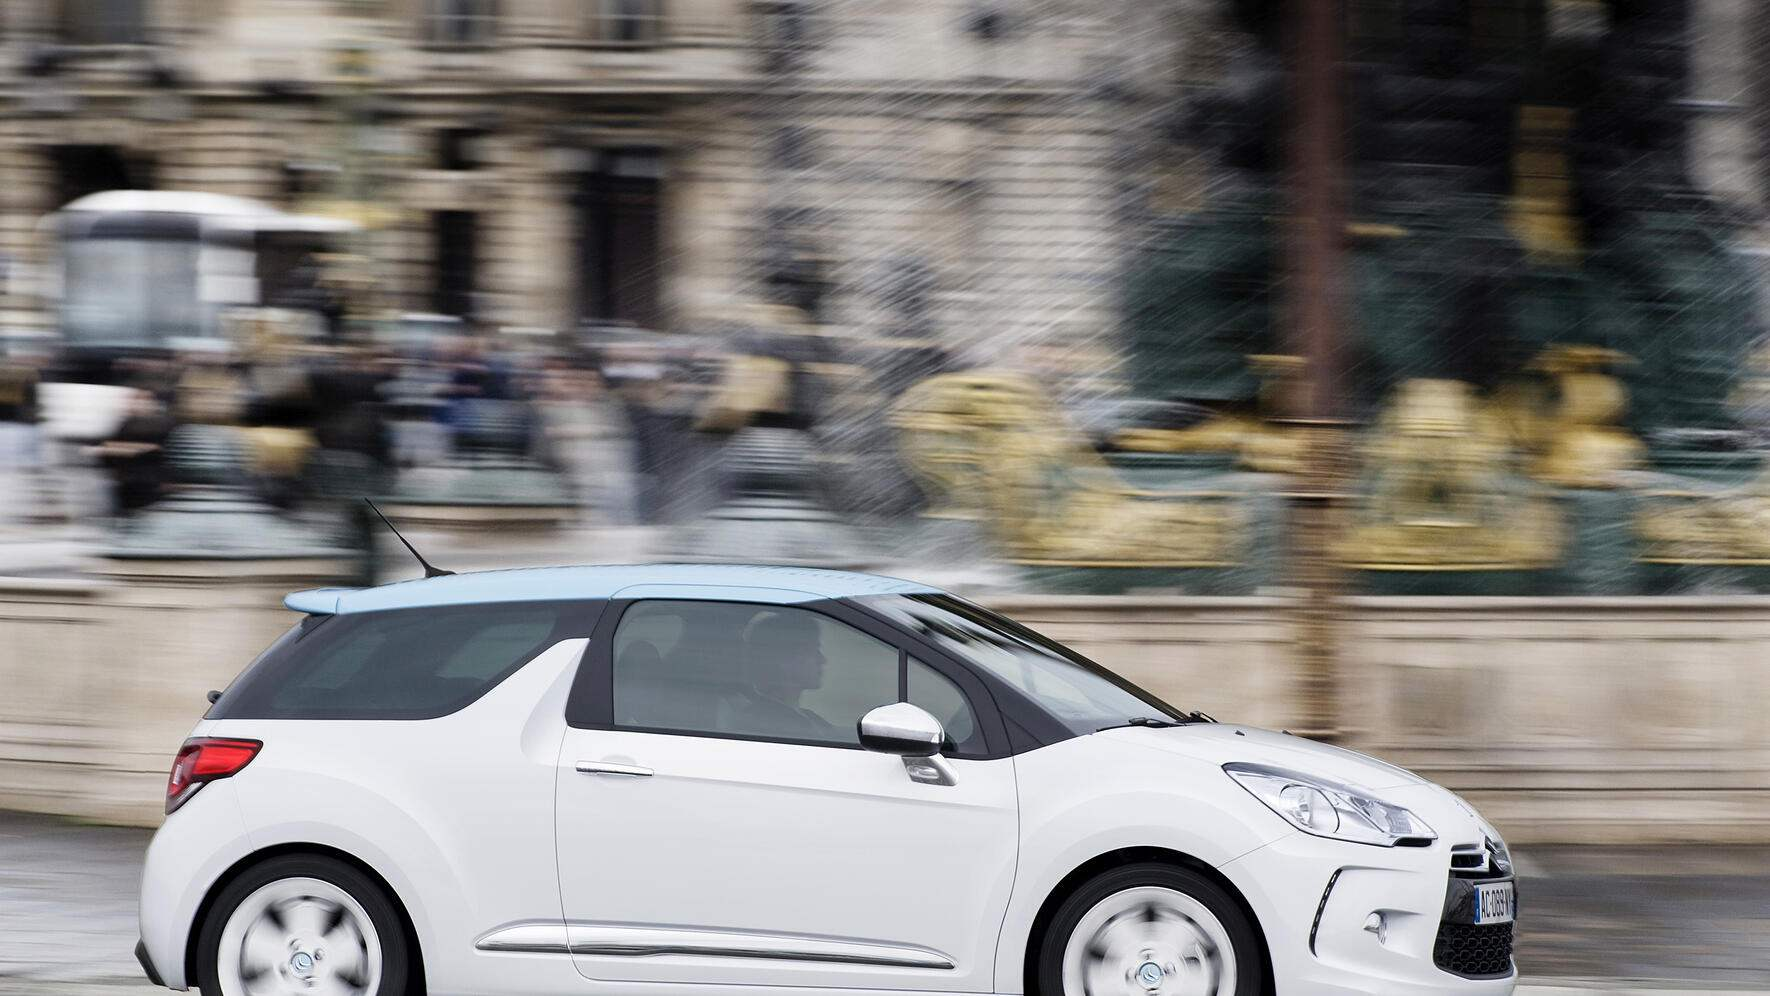 Auto: Citroen DS3 unterwegs